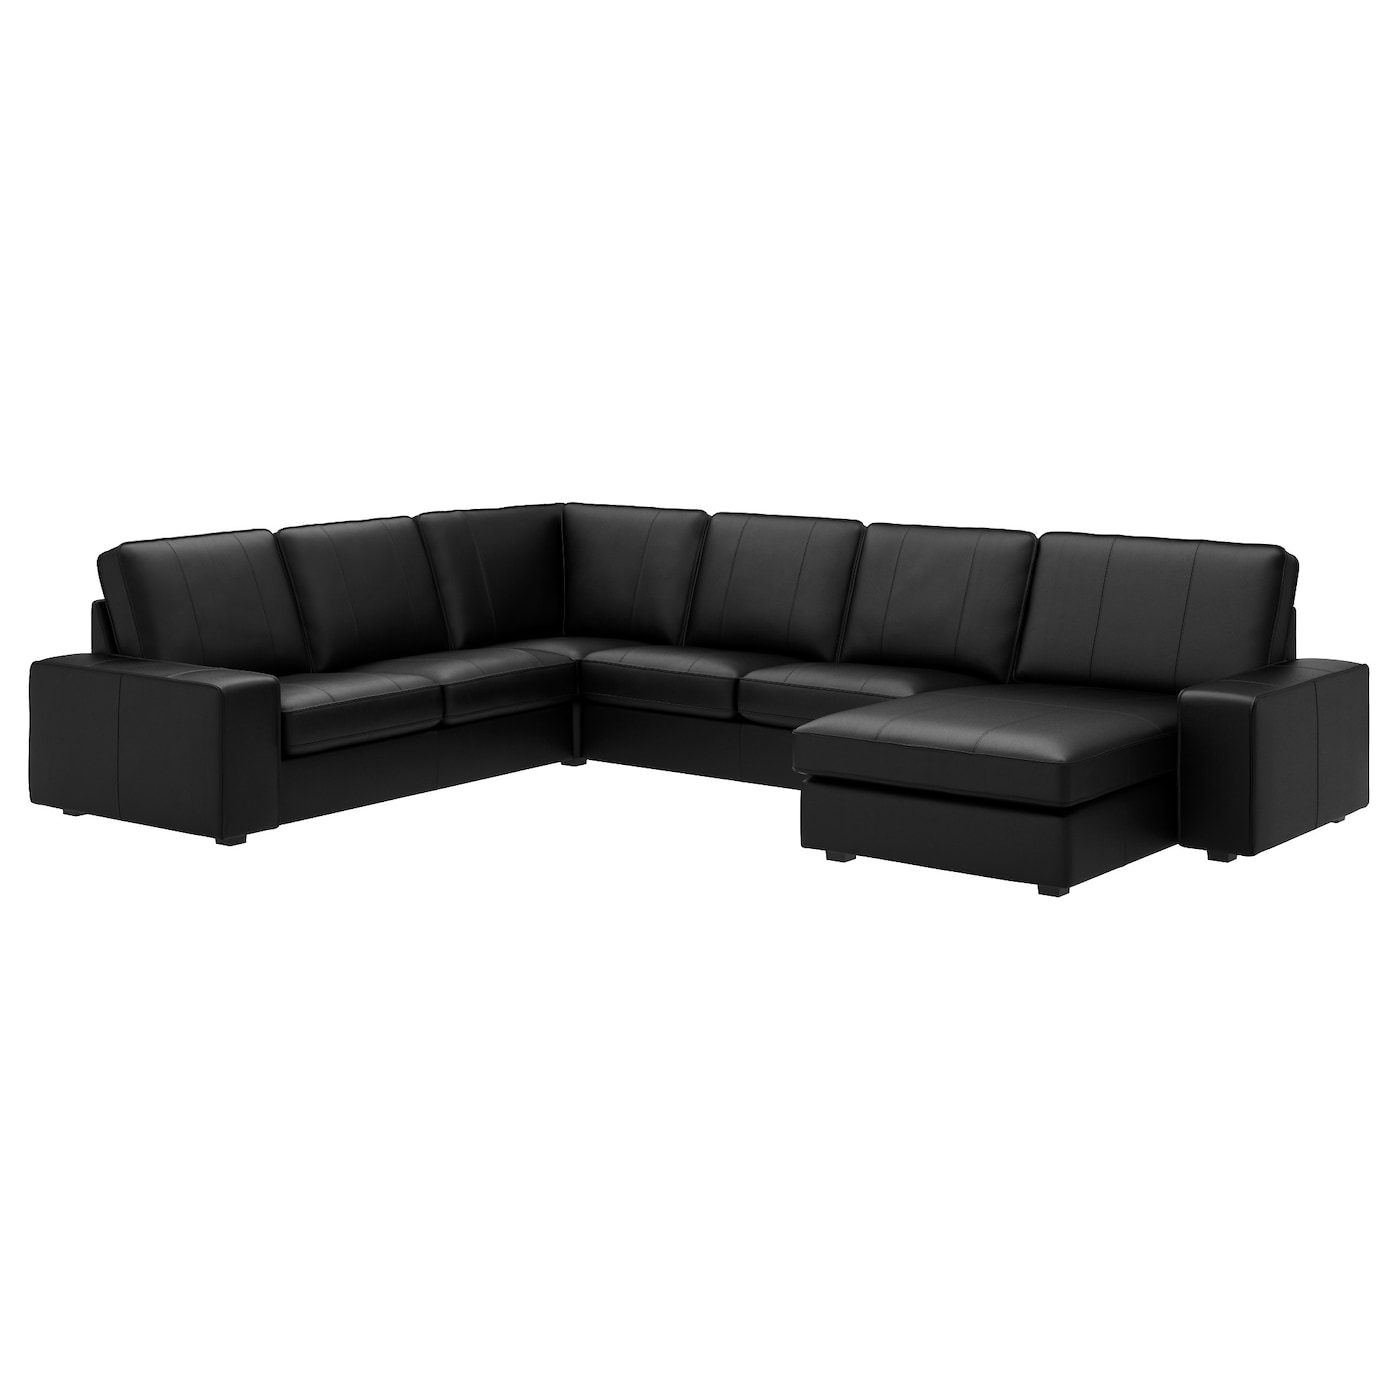 Ikea Kivik Corner Sofa 5 Seat 10 Year Guarantee Read About The Terms